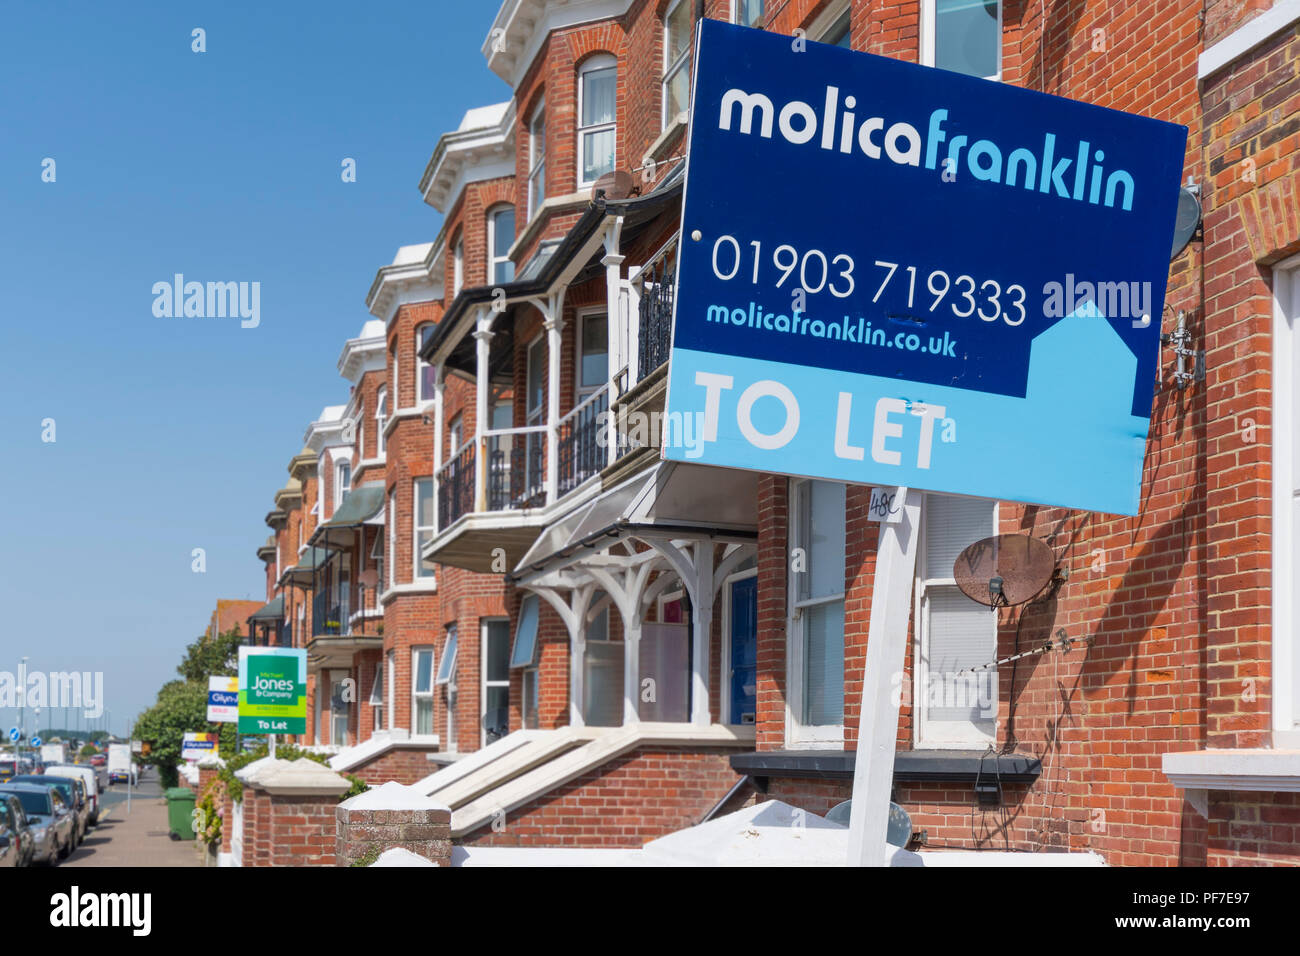 House To Let sign from Molica Franklin outside a house in South Terrace, Littlehampton, West Sussex, England, UK. House to rent. - Stock Image